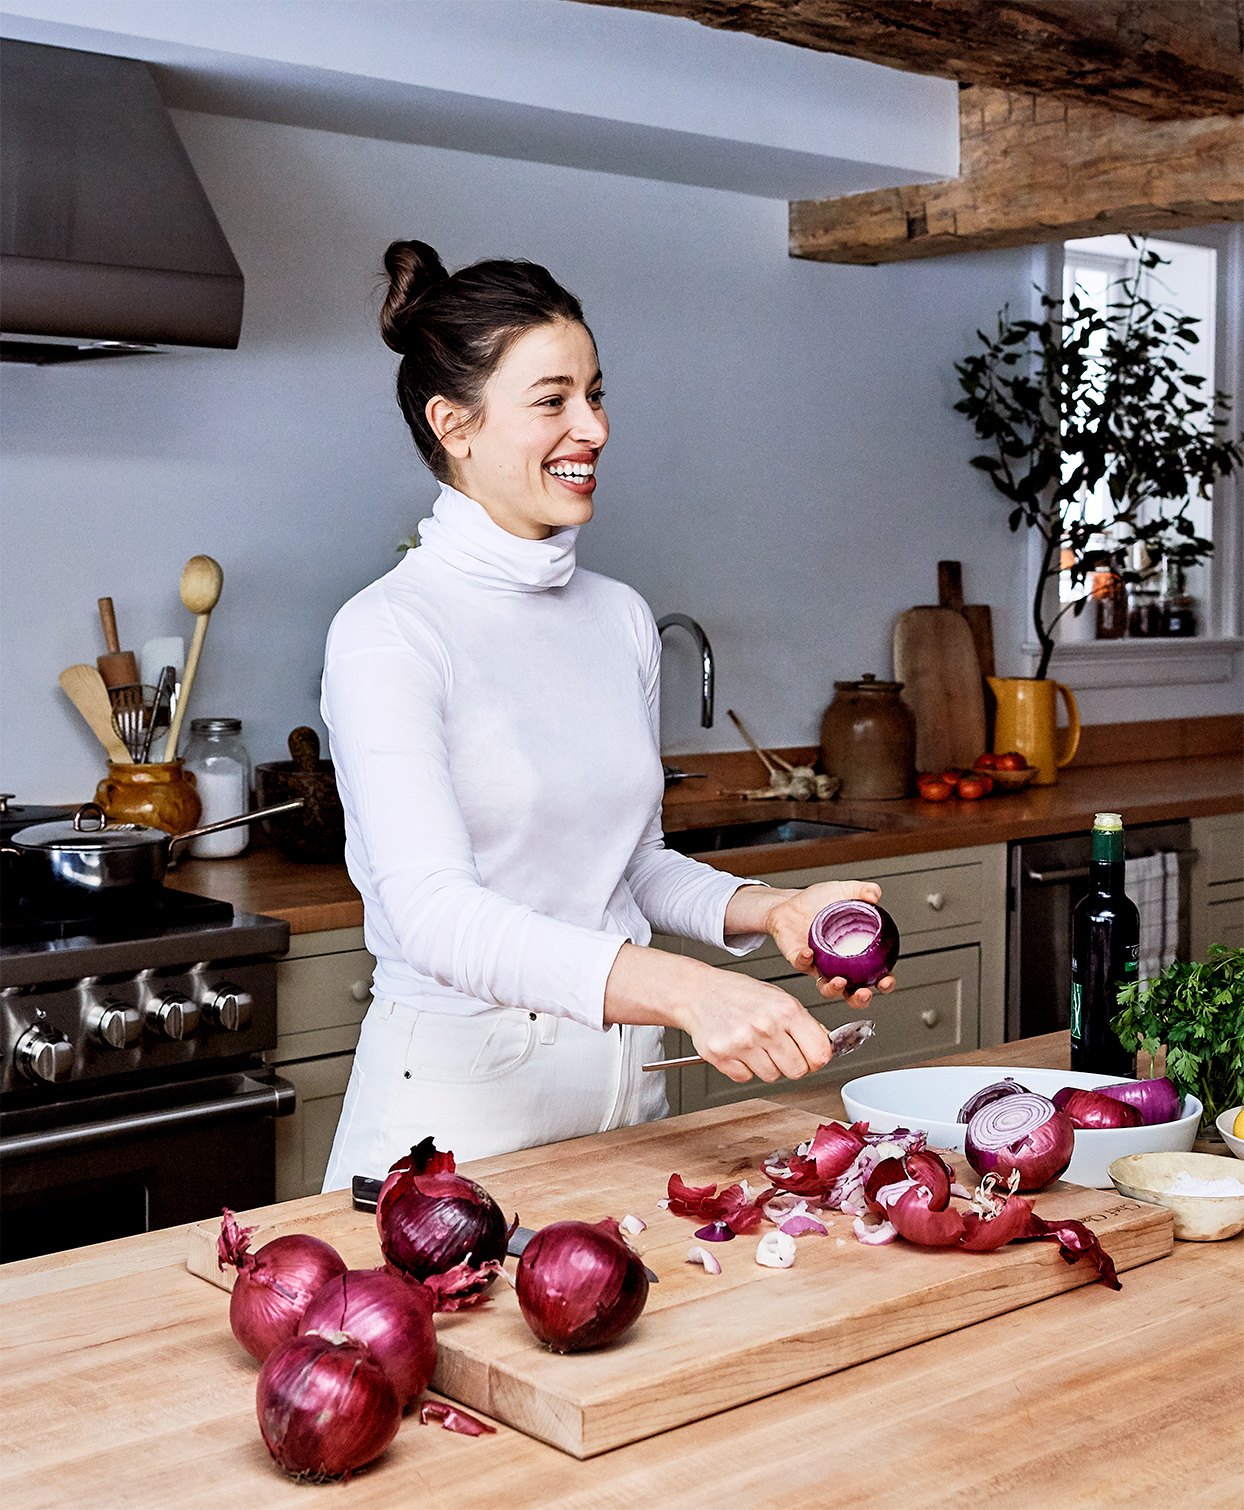 de Boer hollows out red onions for recipe